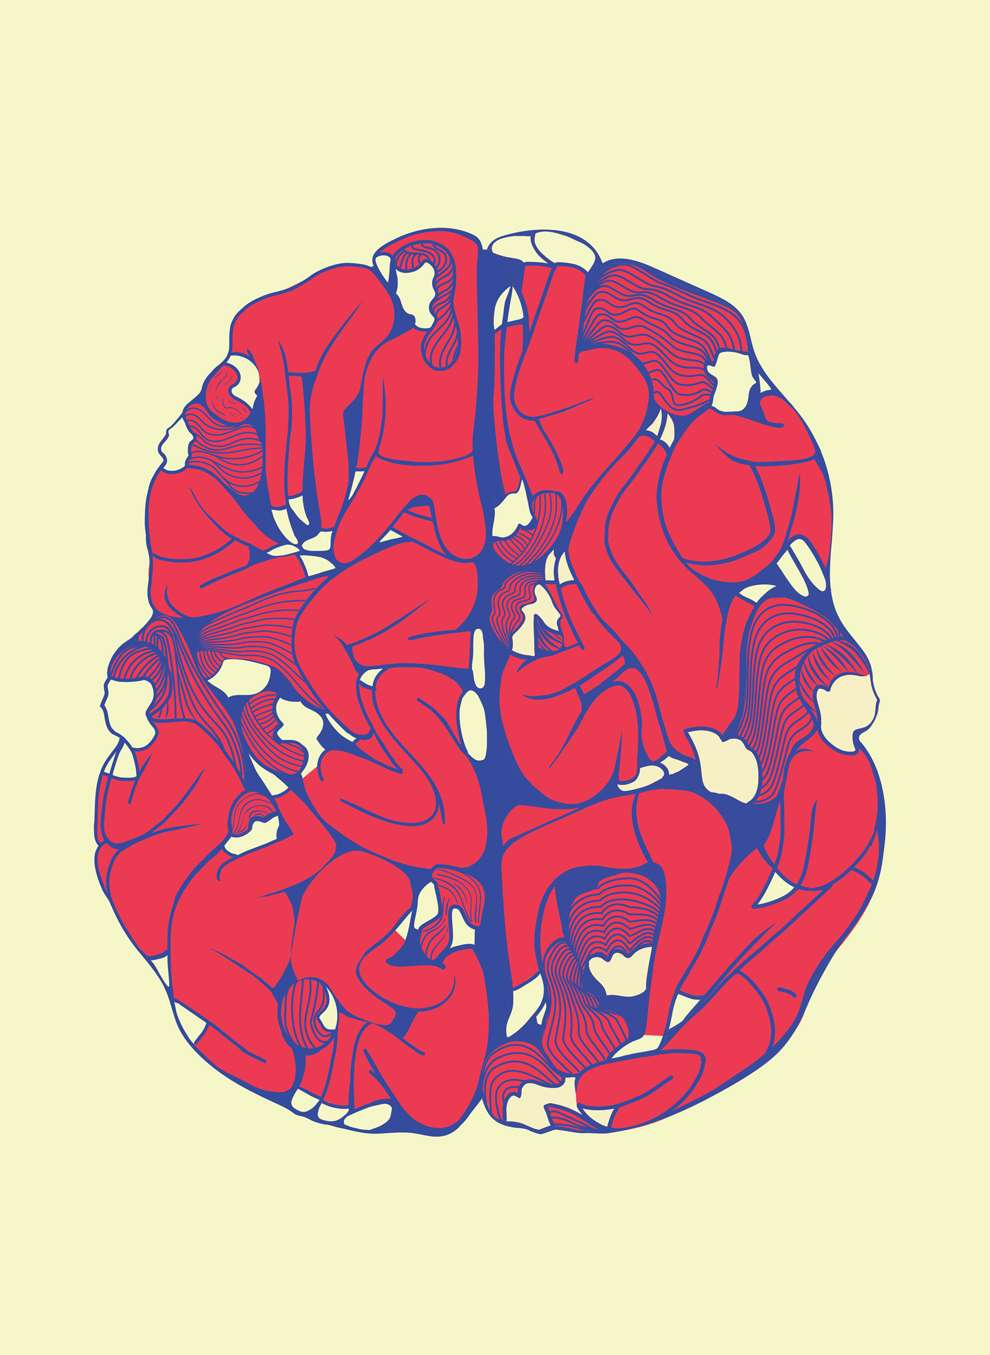 Valentina  D'Efilippo, Bold and graphic digital illustration of bodies composing a brain